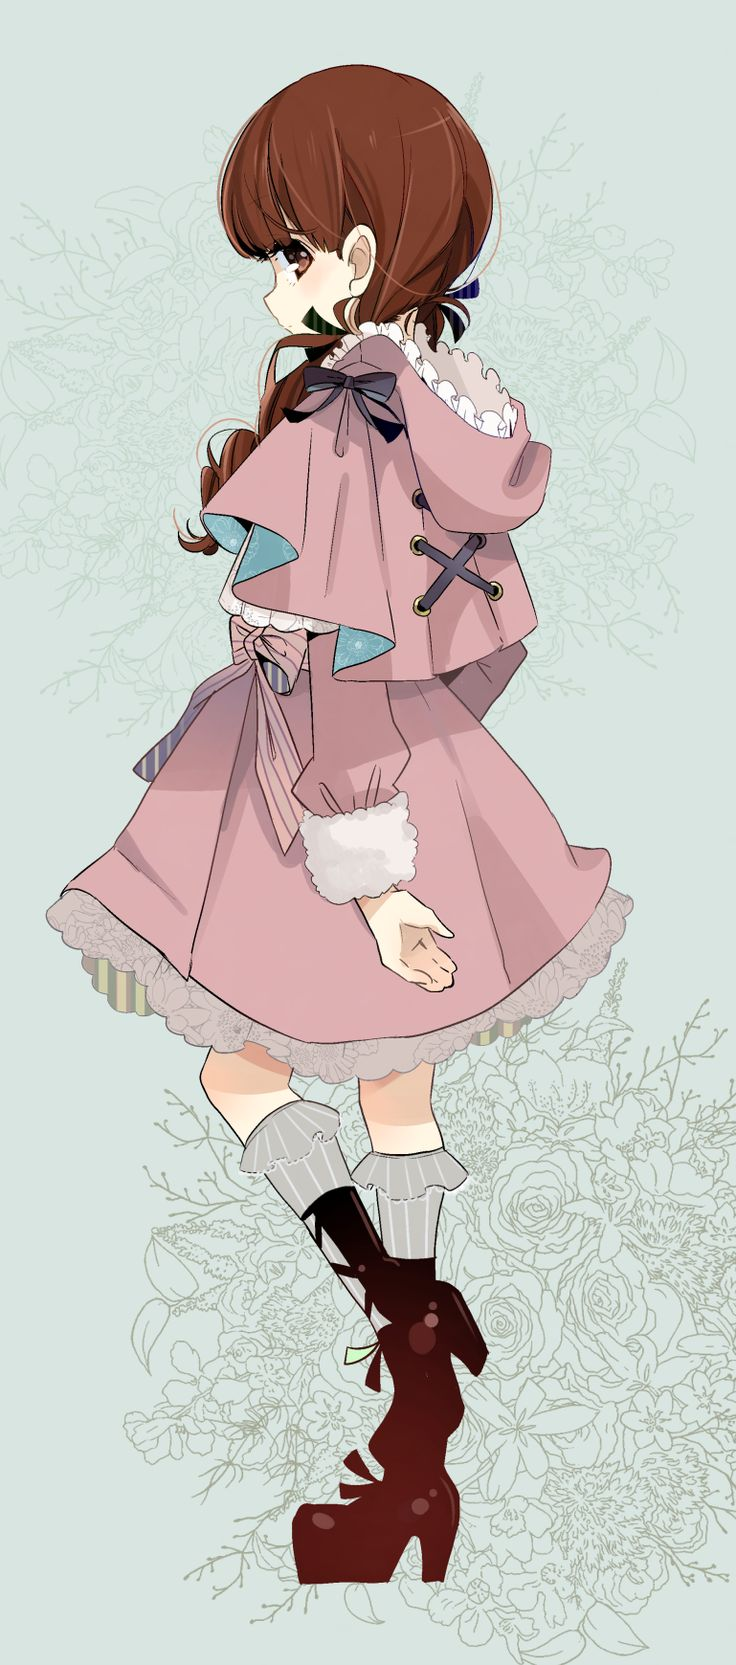 Cute! I love the hair and the clothes.